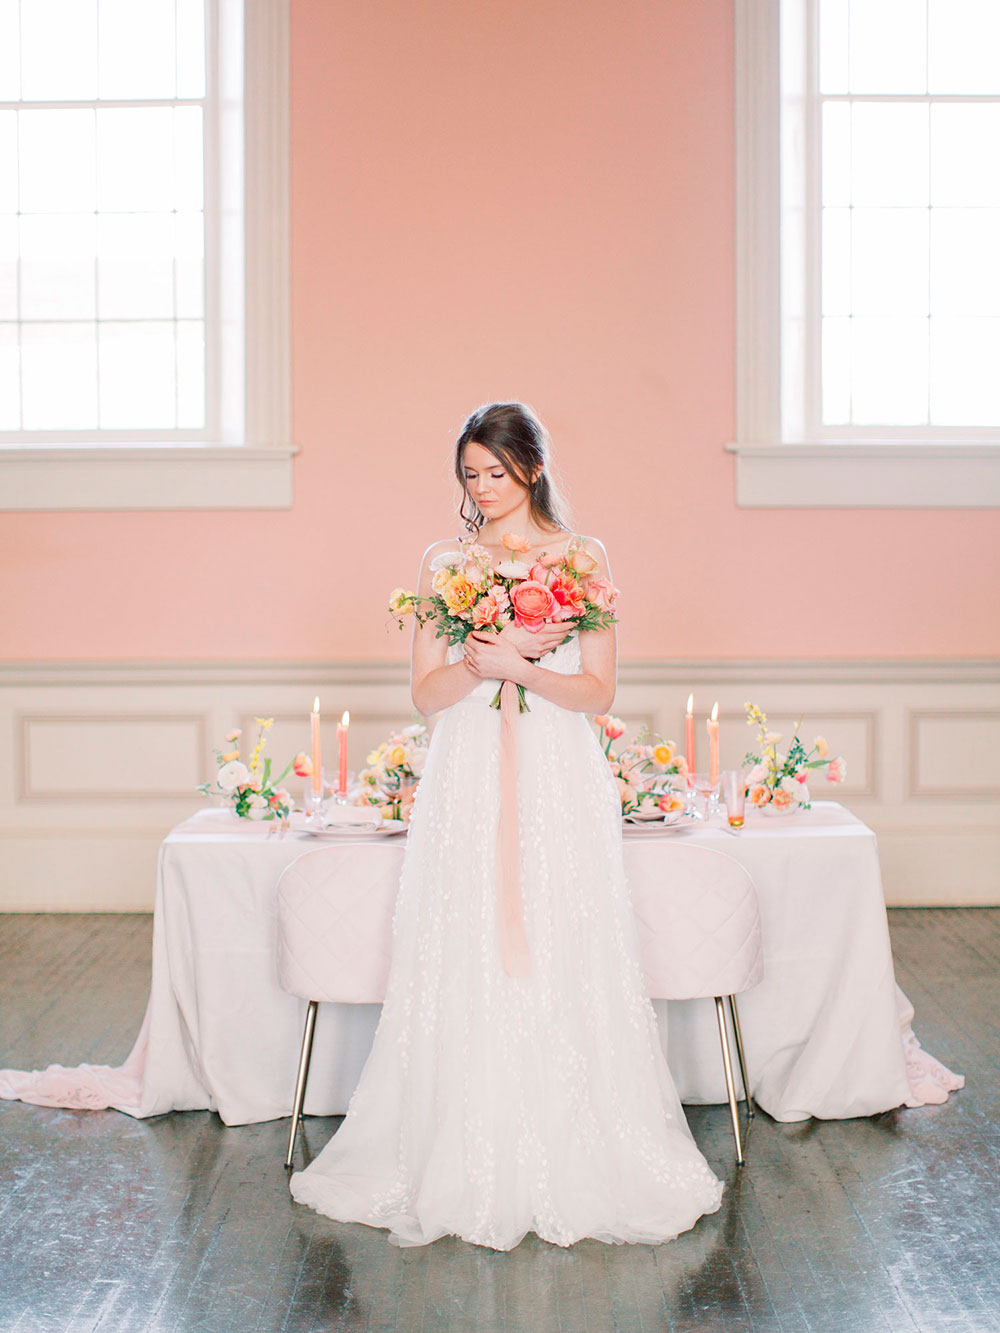 Niagara-on-the-Lake-Courthouse-Vineyard-Bride-Editorial-photo-by-Jessica-Imrie-Photography-019.jpg